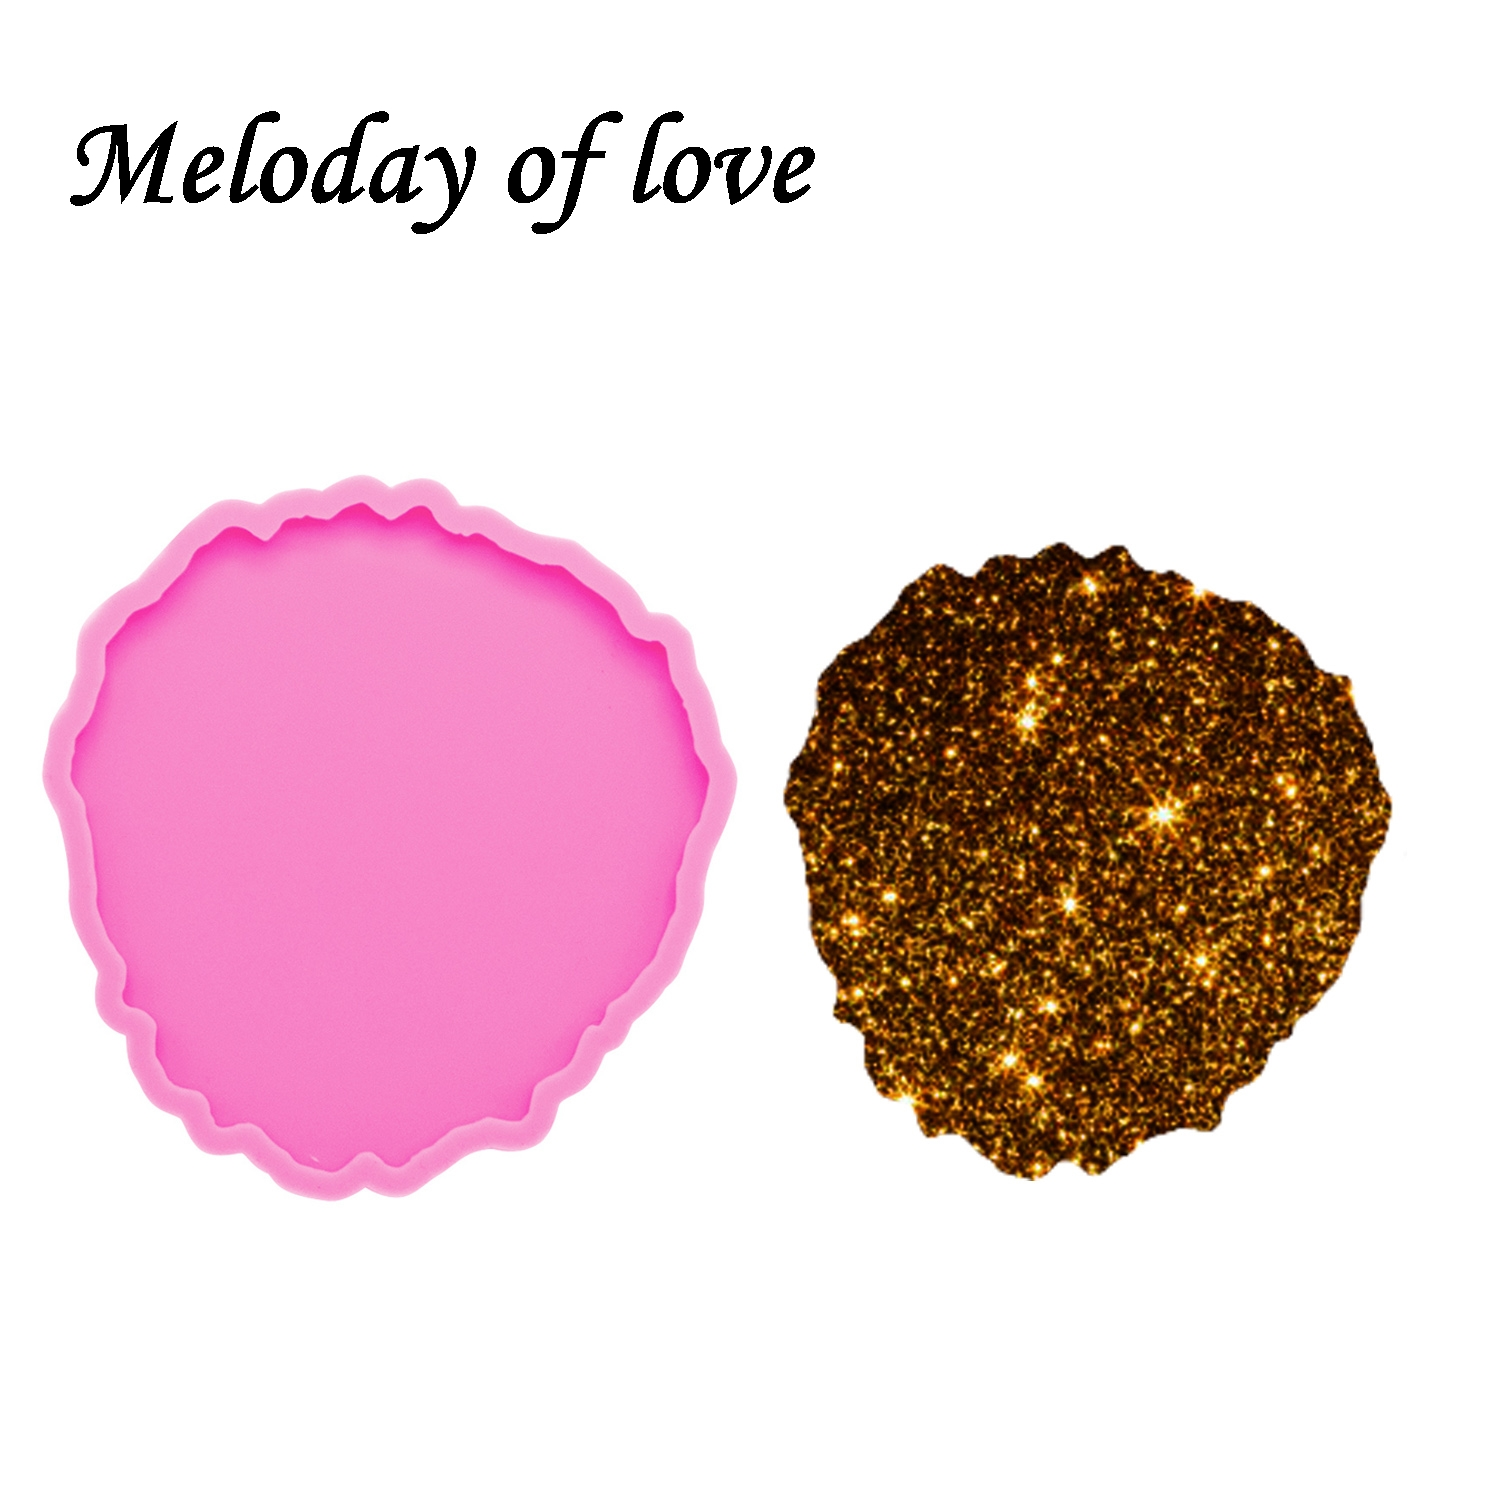 Shiny Glossy Round Shapes Epoxy Resin Molds Coaster Silicone Mold Diy Making Geode Coasters Custom Mould DY0253